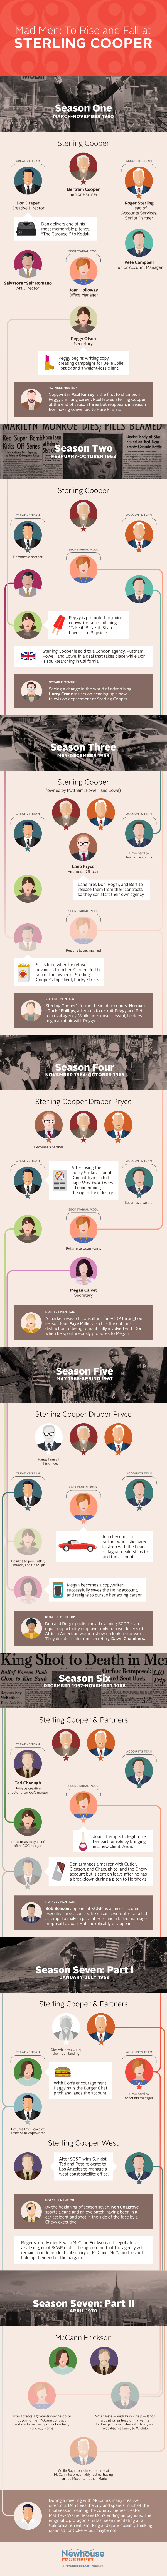 Infographic tracking the professional ups and downs of characters from the TV show Mad Men.